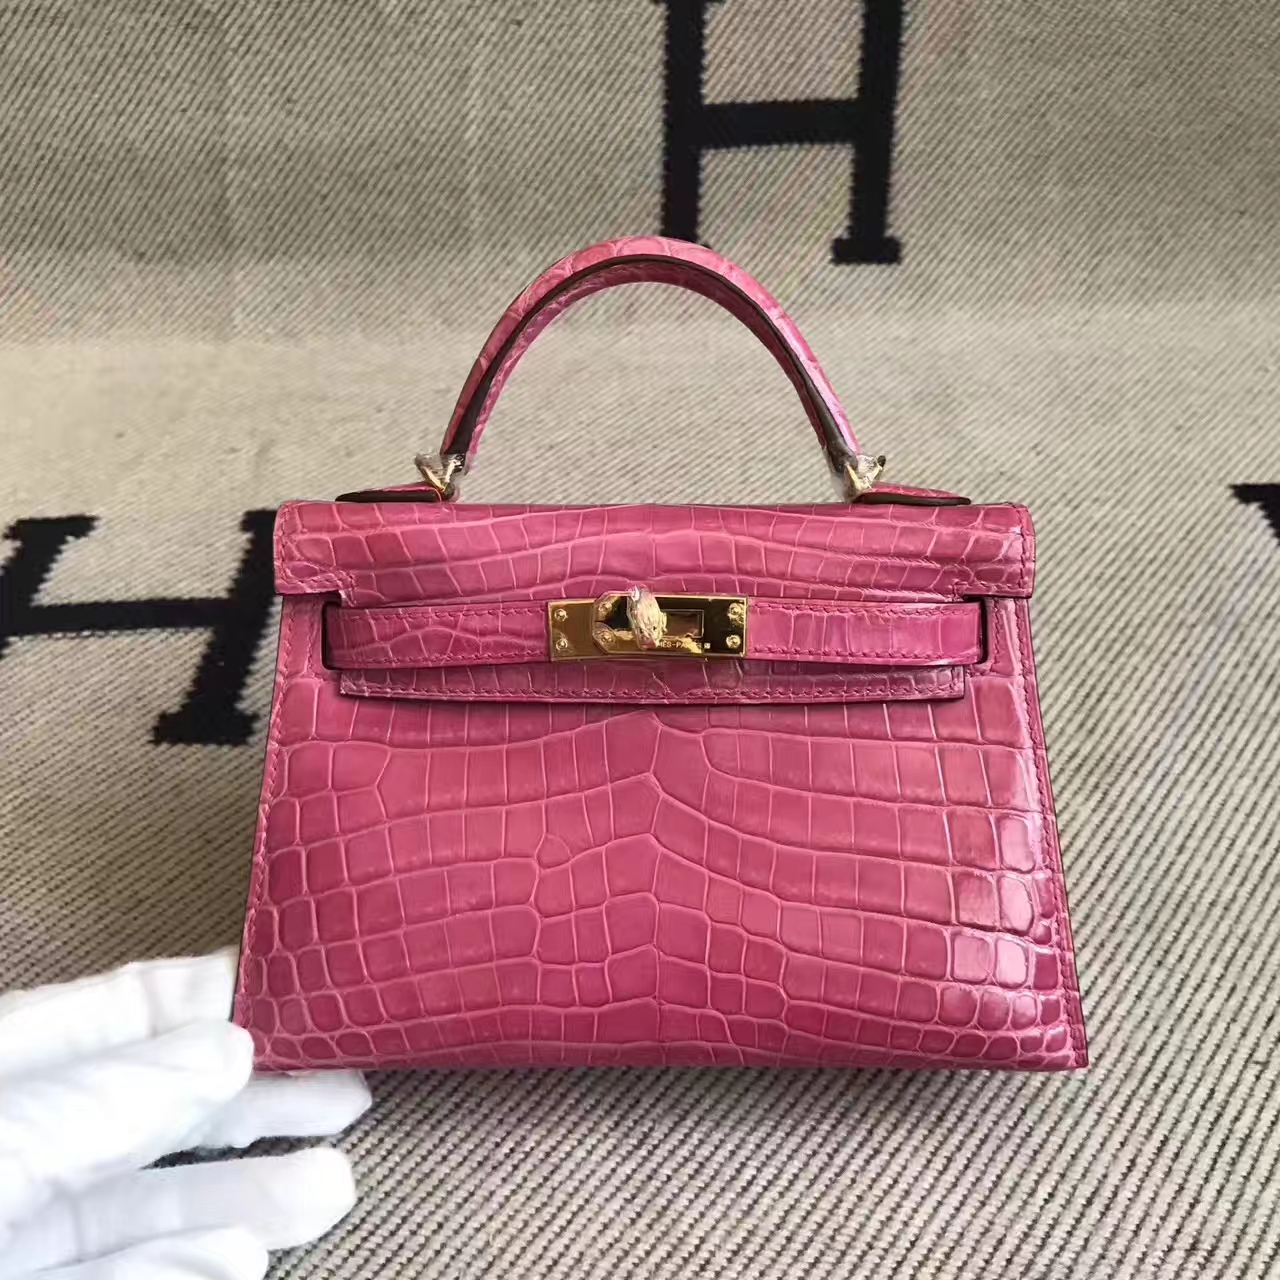 Cheap Hermes Minikelly-2 Clutch Bag in 5E Hot Pink Crocodile Shiny Leather